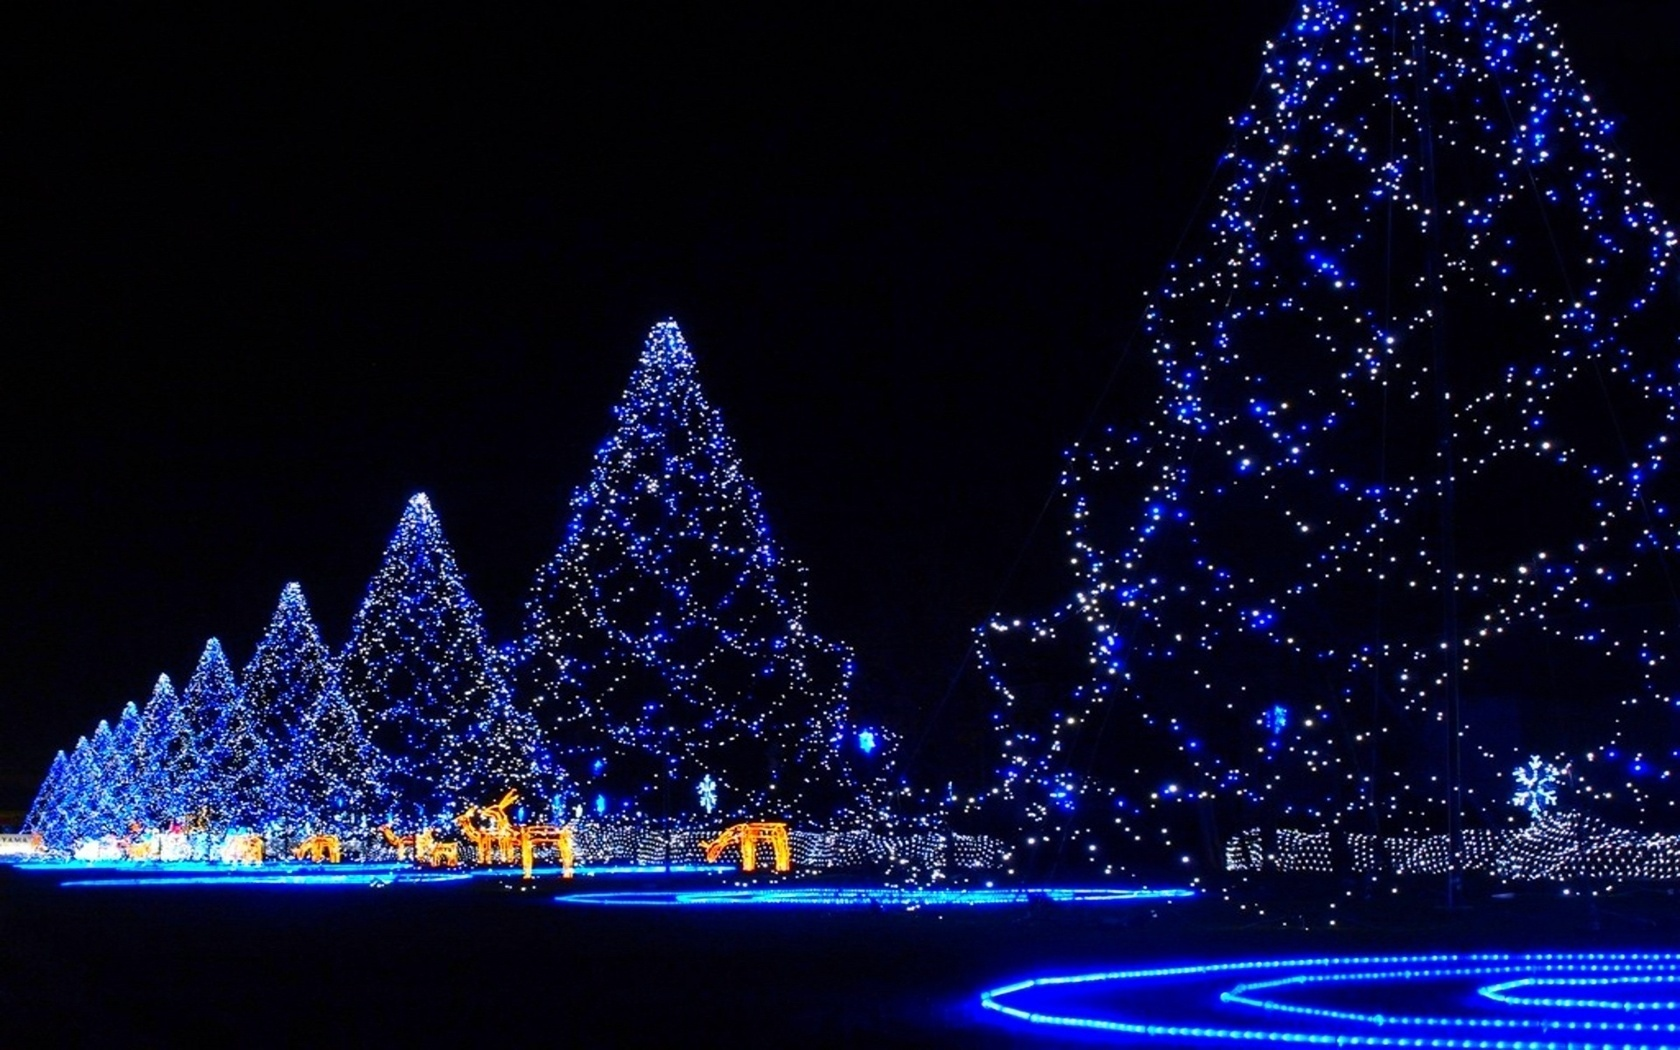 Christmas festival hd wallpaper